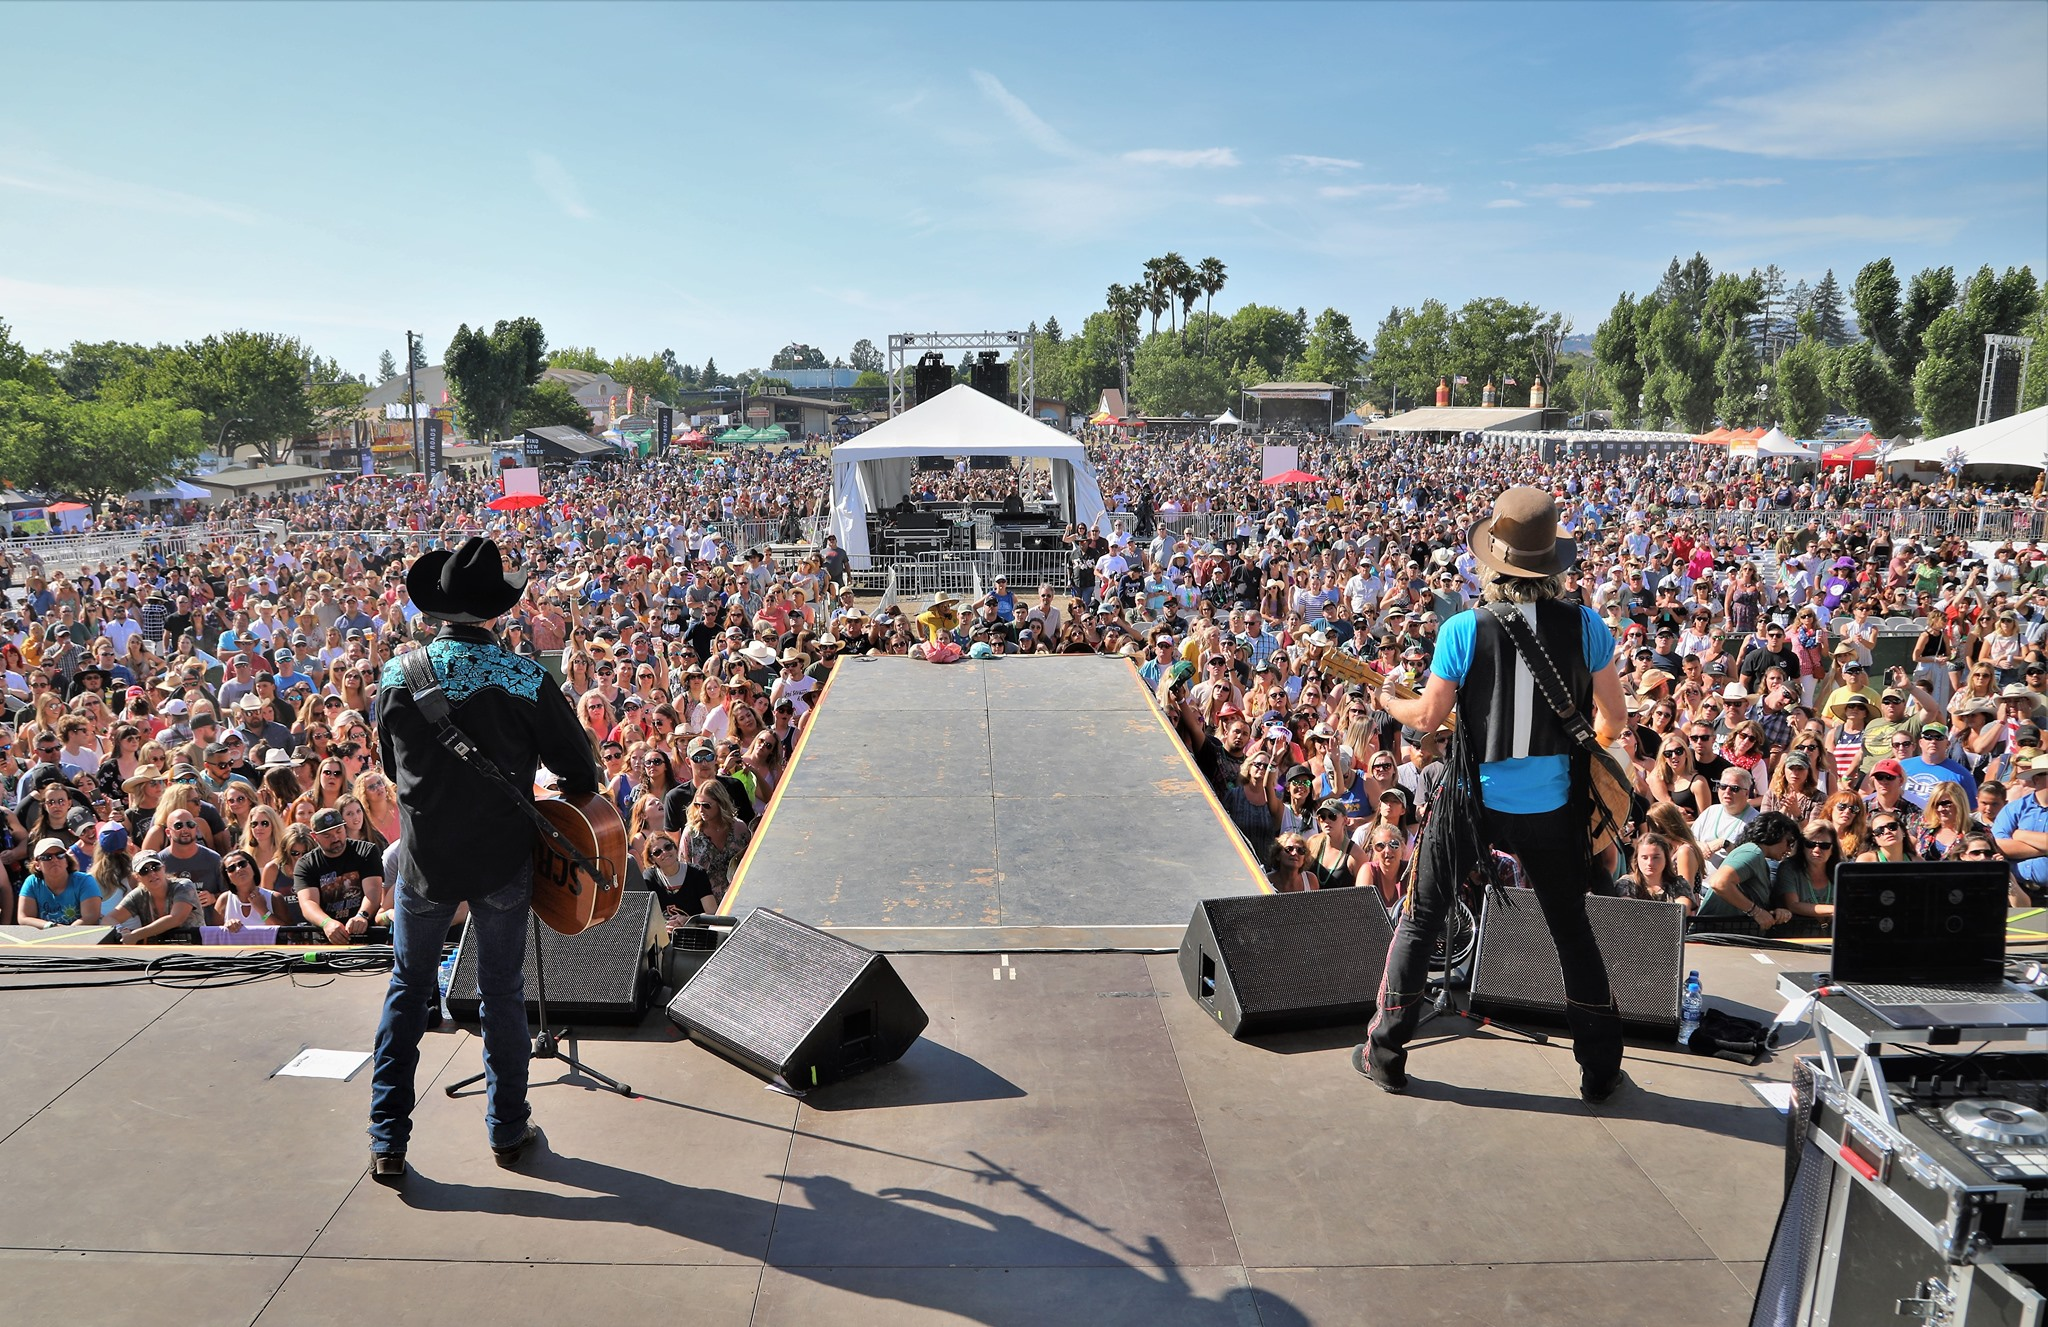 Country Summer Music Festival 2022